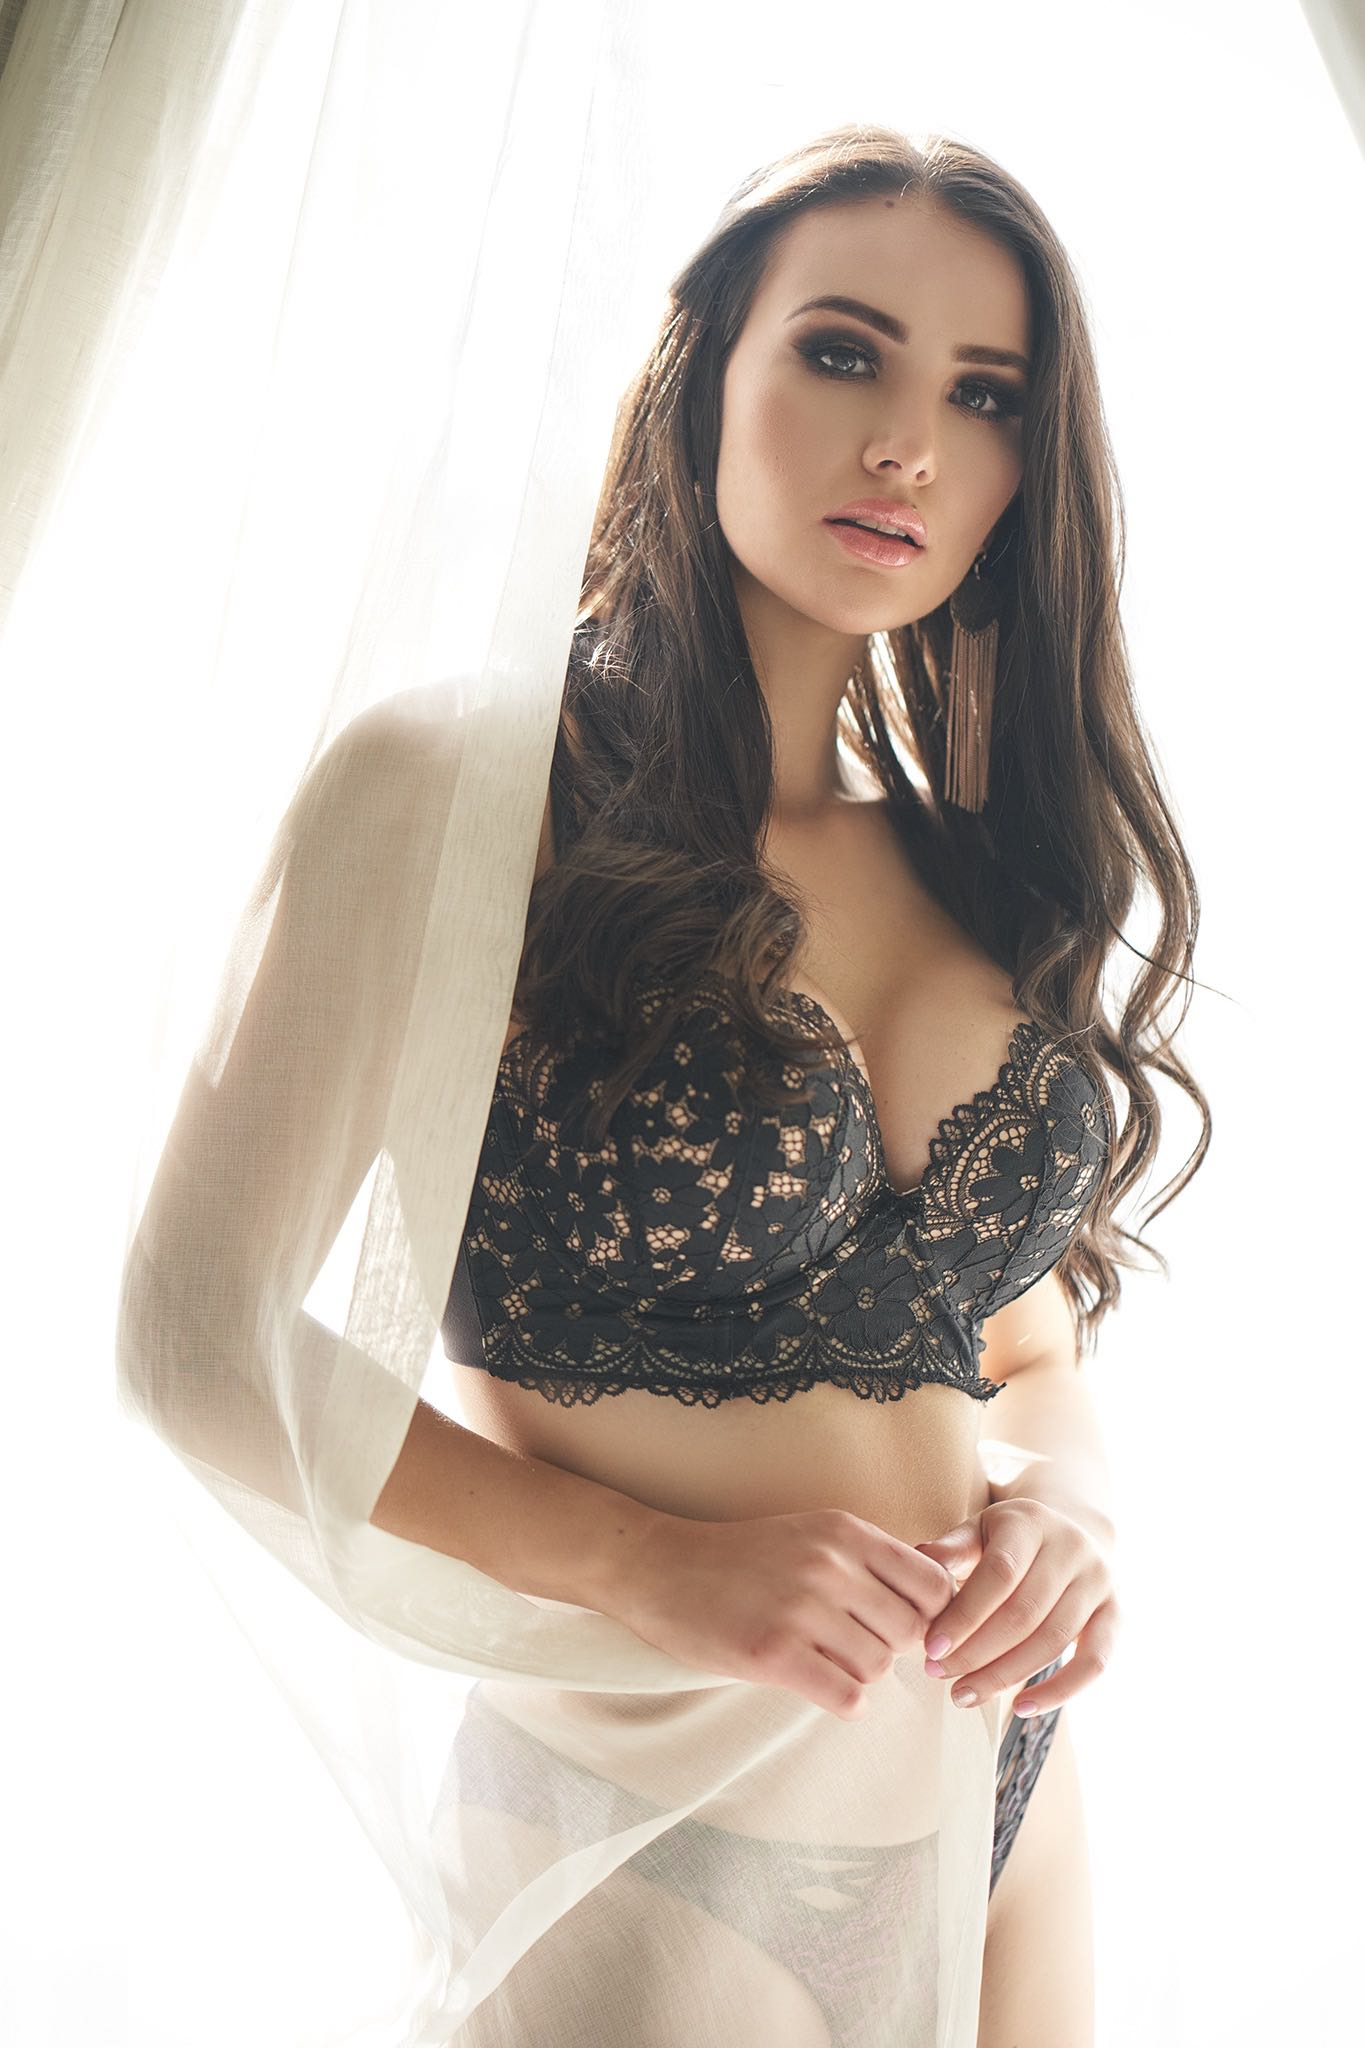 Meet Anita Meyer in our South African girls feature